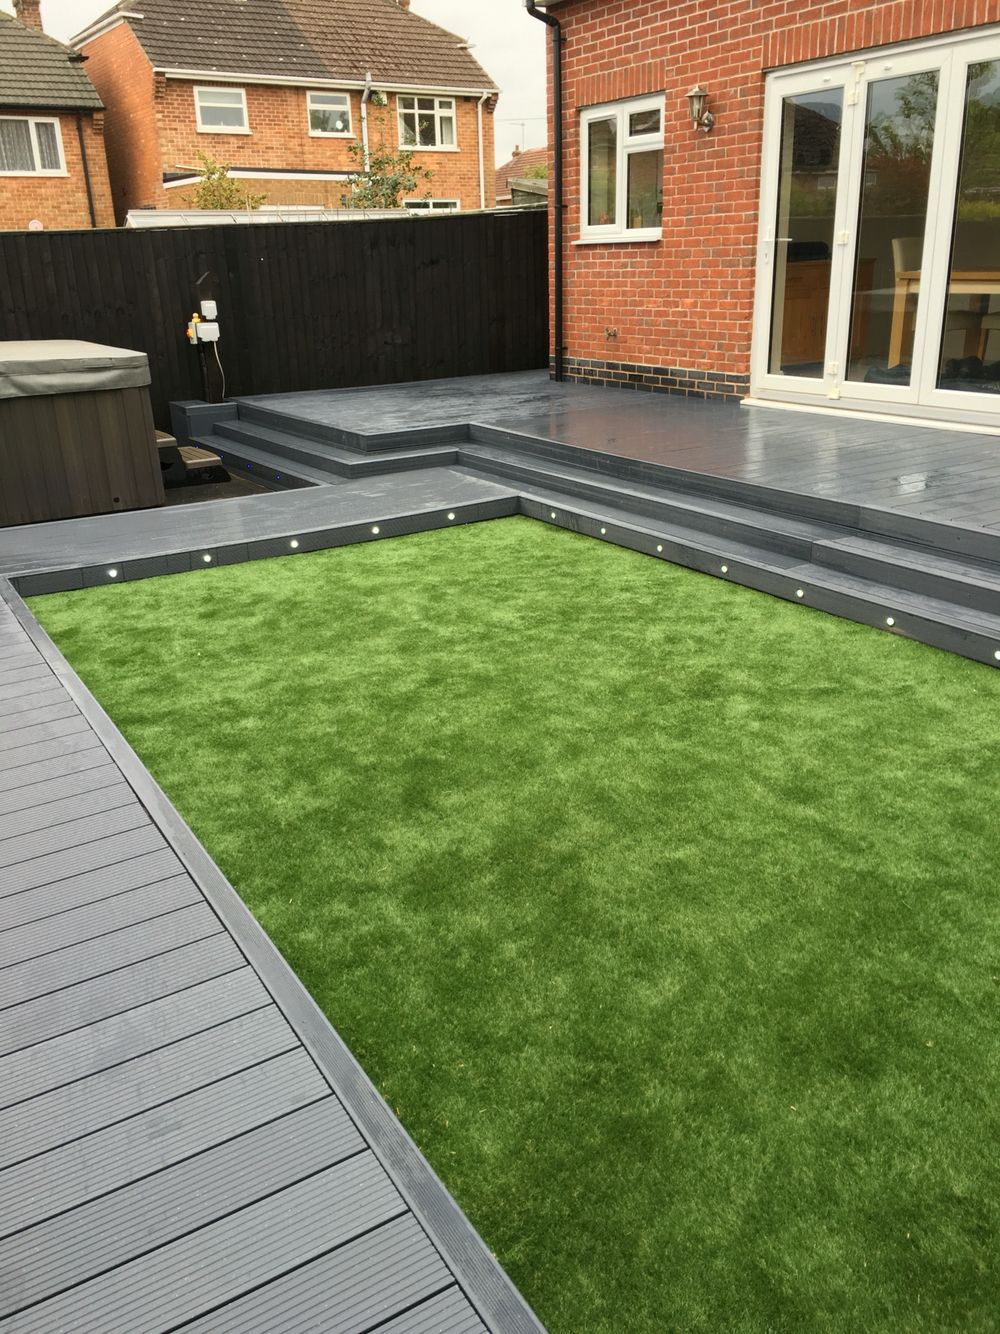 UPM Profi Composite Decking nicely paired together with an Astro ...